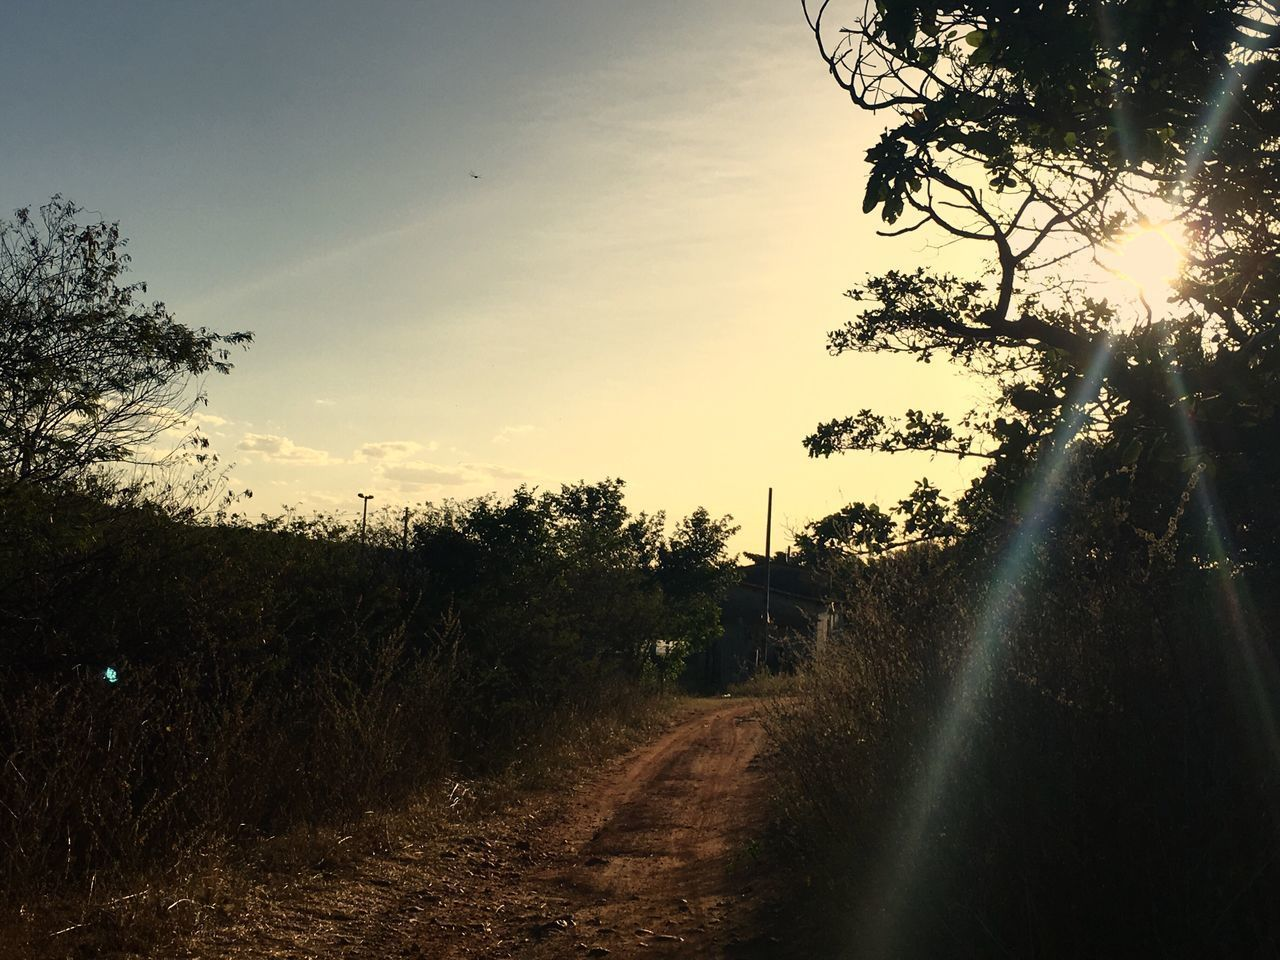 tree, the way forward, landscape, sunset, tranquil scene, diminishing perspective, nature, no people, scenics, sun, tranquility, transportation, growth, outdoors, sunlight, beauty in nature, sky, grass, road, clear sky, day